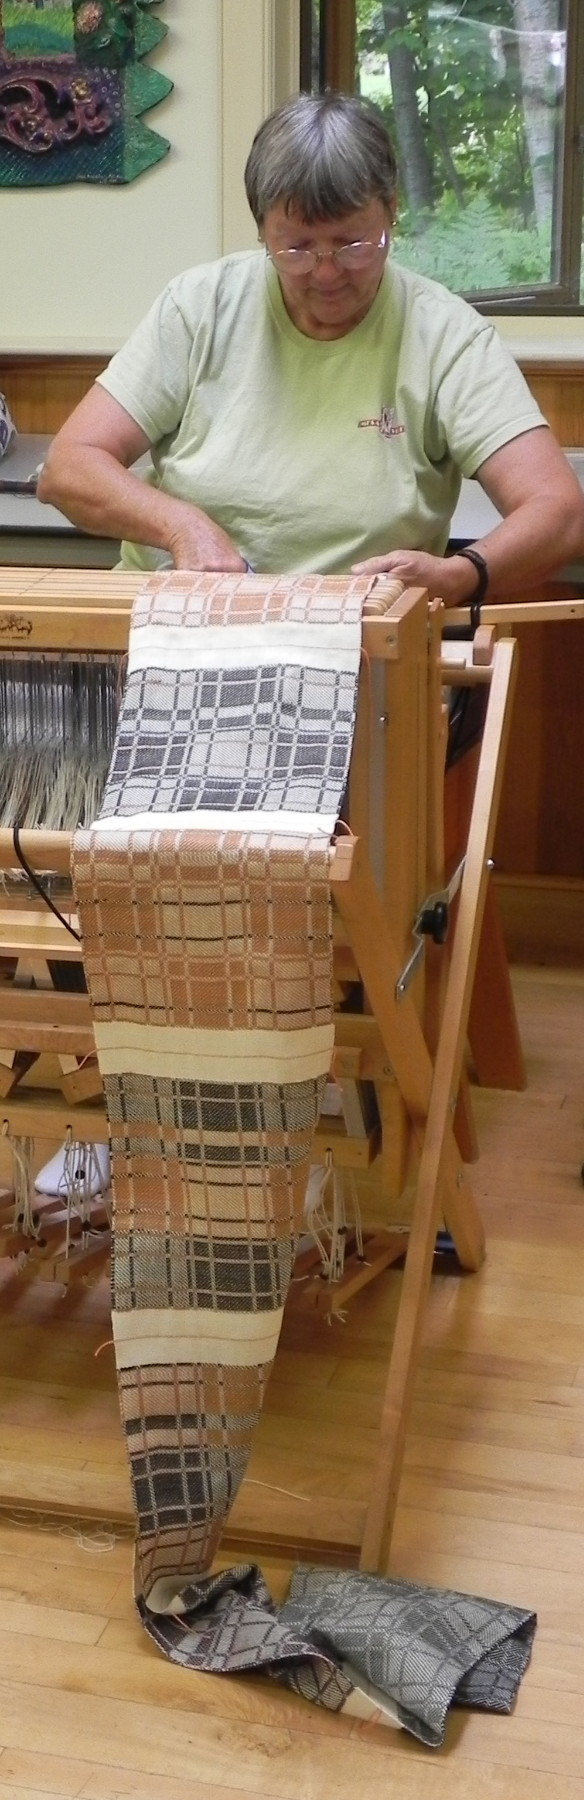 Woven in Robyn Spady's Block Weaves class at Sievers School of Fiber Arts.